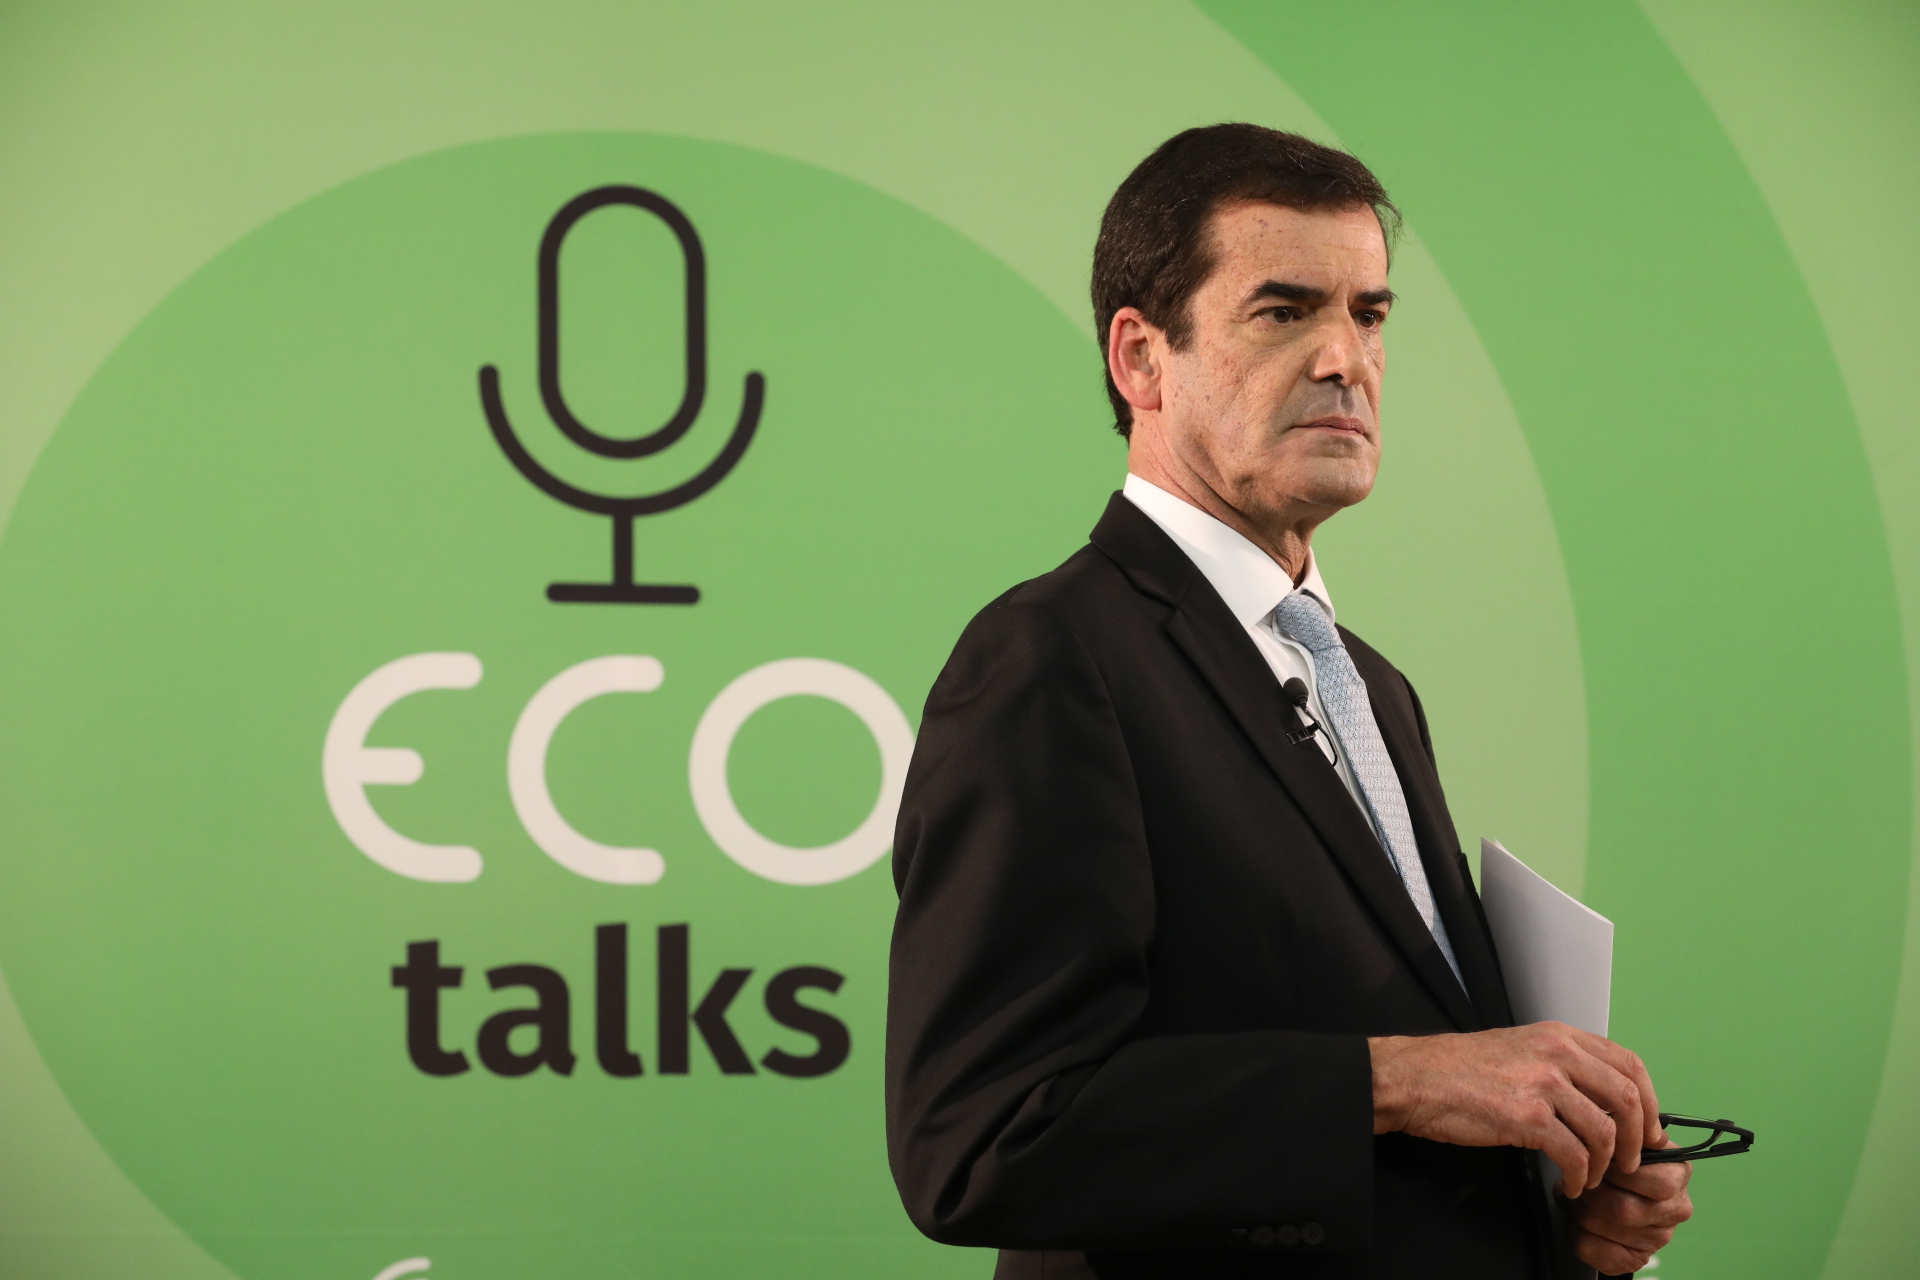 Rui Moreira no ECO Talks